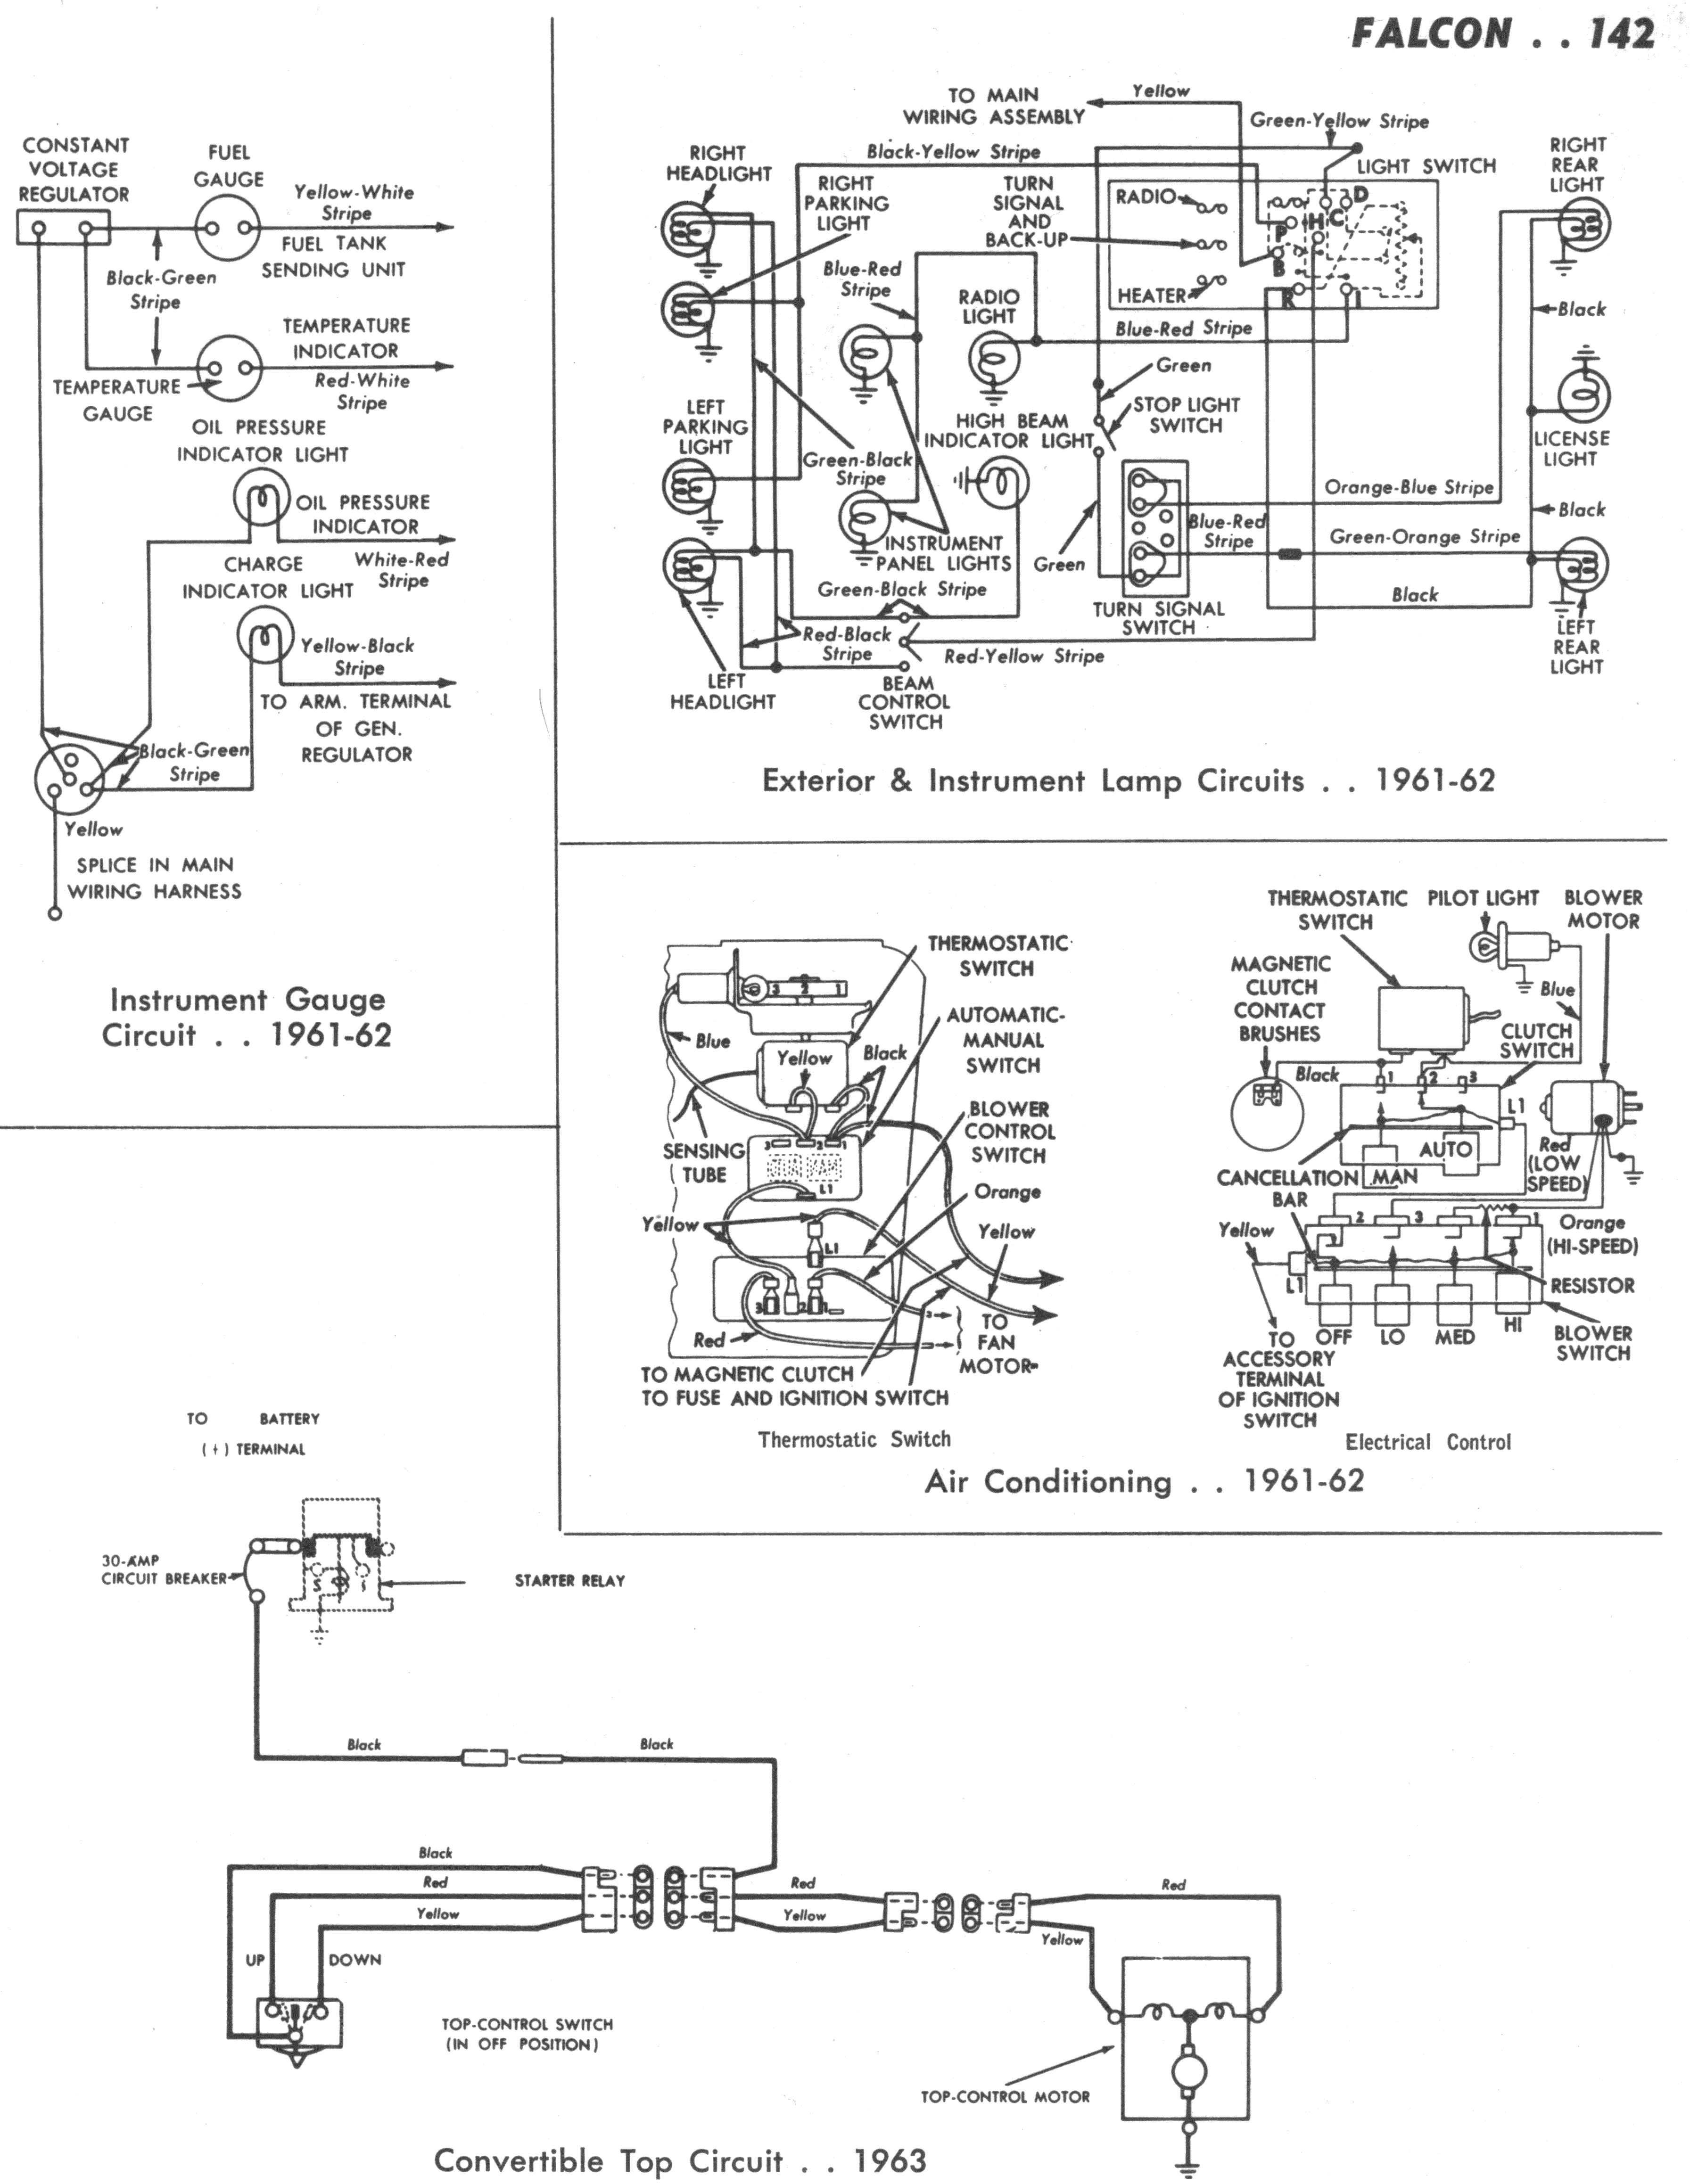 rcel actuator wiring diagram 288 best wiring librarythunderbird wiring harness print version (854k, png)